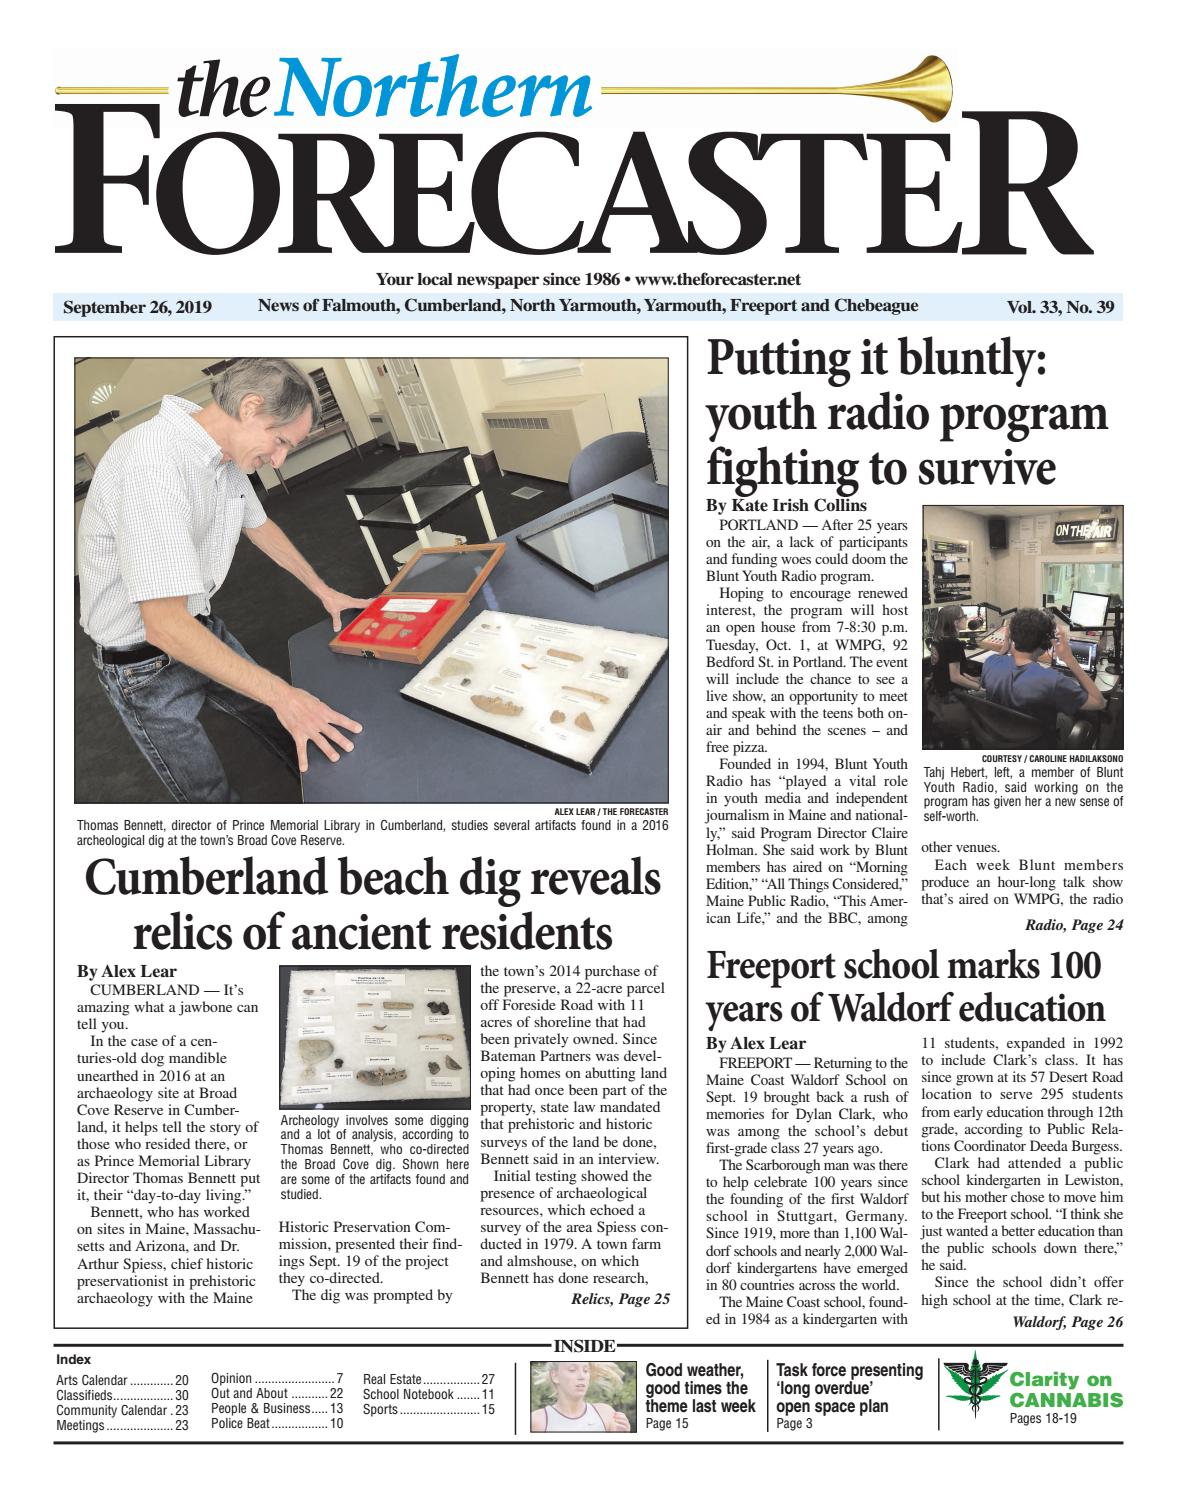 The Forecaster, Northern Edition, September 26, 2019The For Davidson County Tn School Calendar20